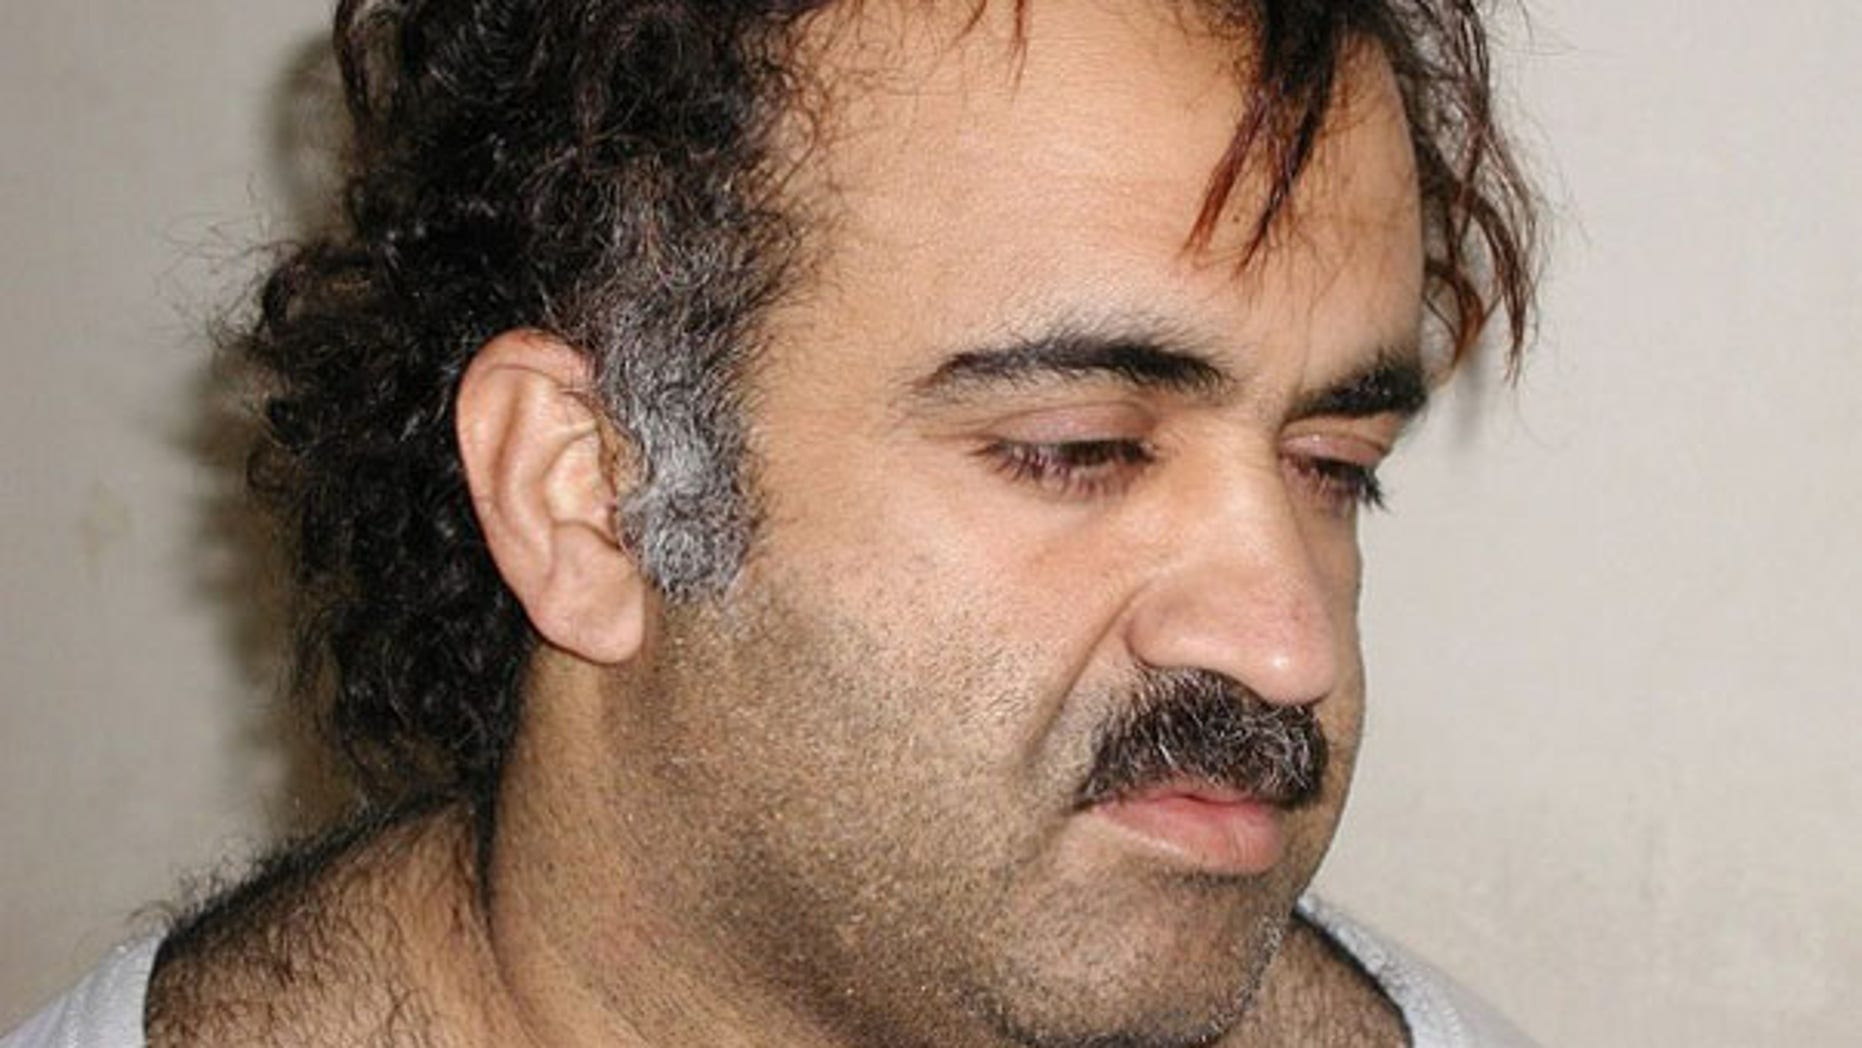 Khalid Sheikh Mohammed is shown in this file photograph during his arrest on March 1, 2003. (Reuters Photo)